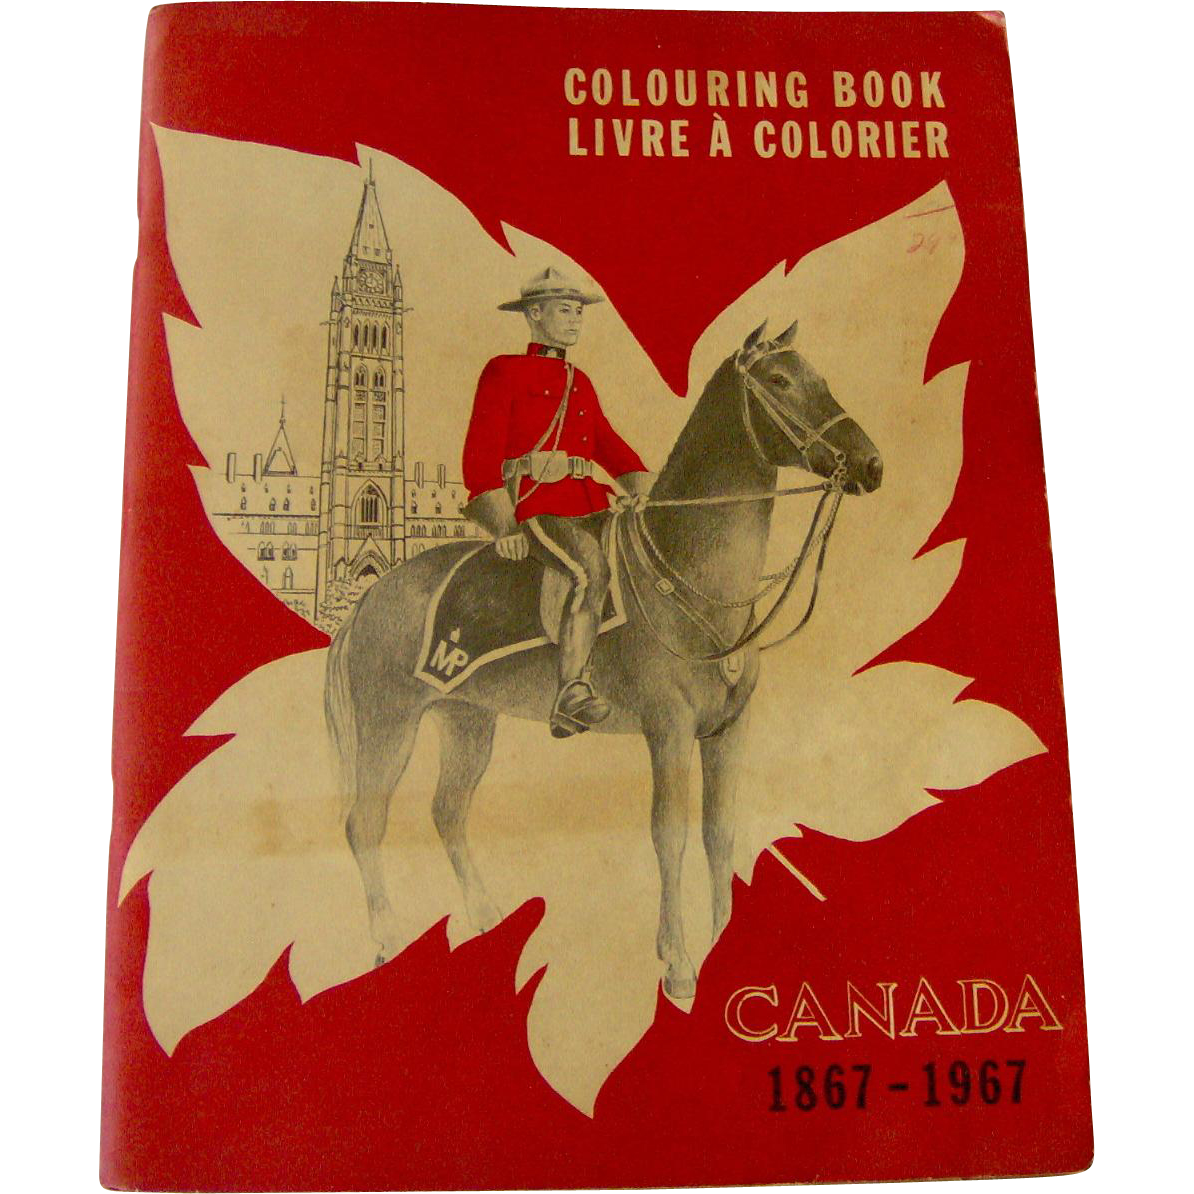 Vintage Canada 1867 to 1967 Coloring Book